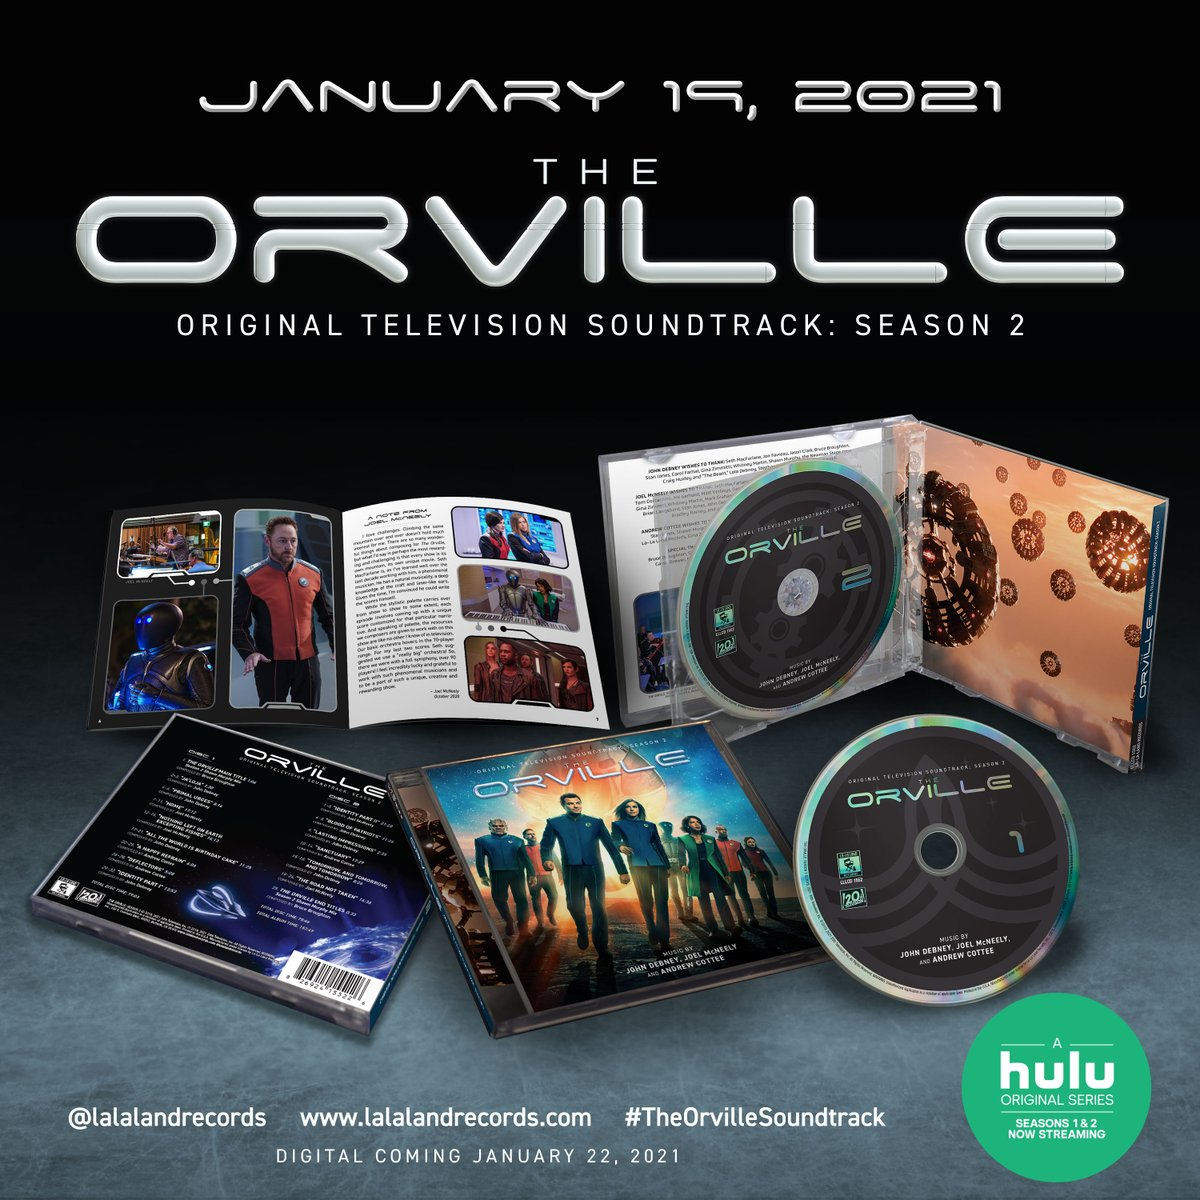 Coming Jan 19! @TheOrville Season 2 #Soundtrack 2-CD set by @JohnDebney @joelsephmc @cotteemusic   Pre-order now:  #TheOrvilleSoundtrack @SethMacFarlane @hulu